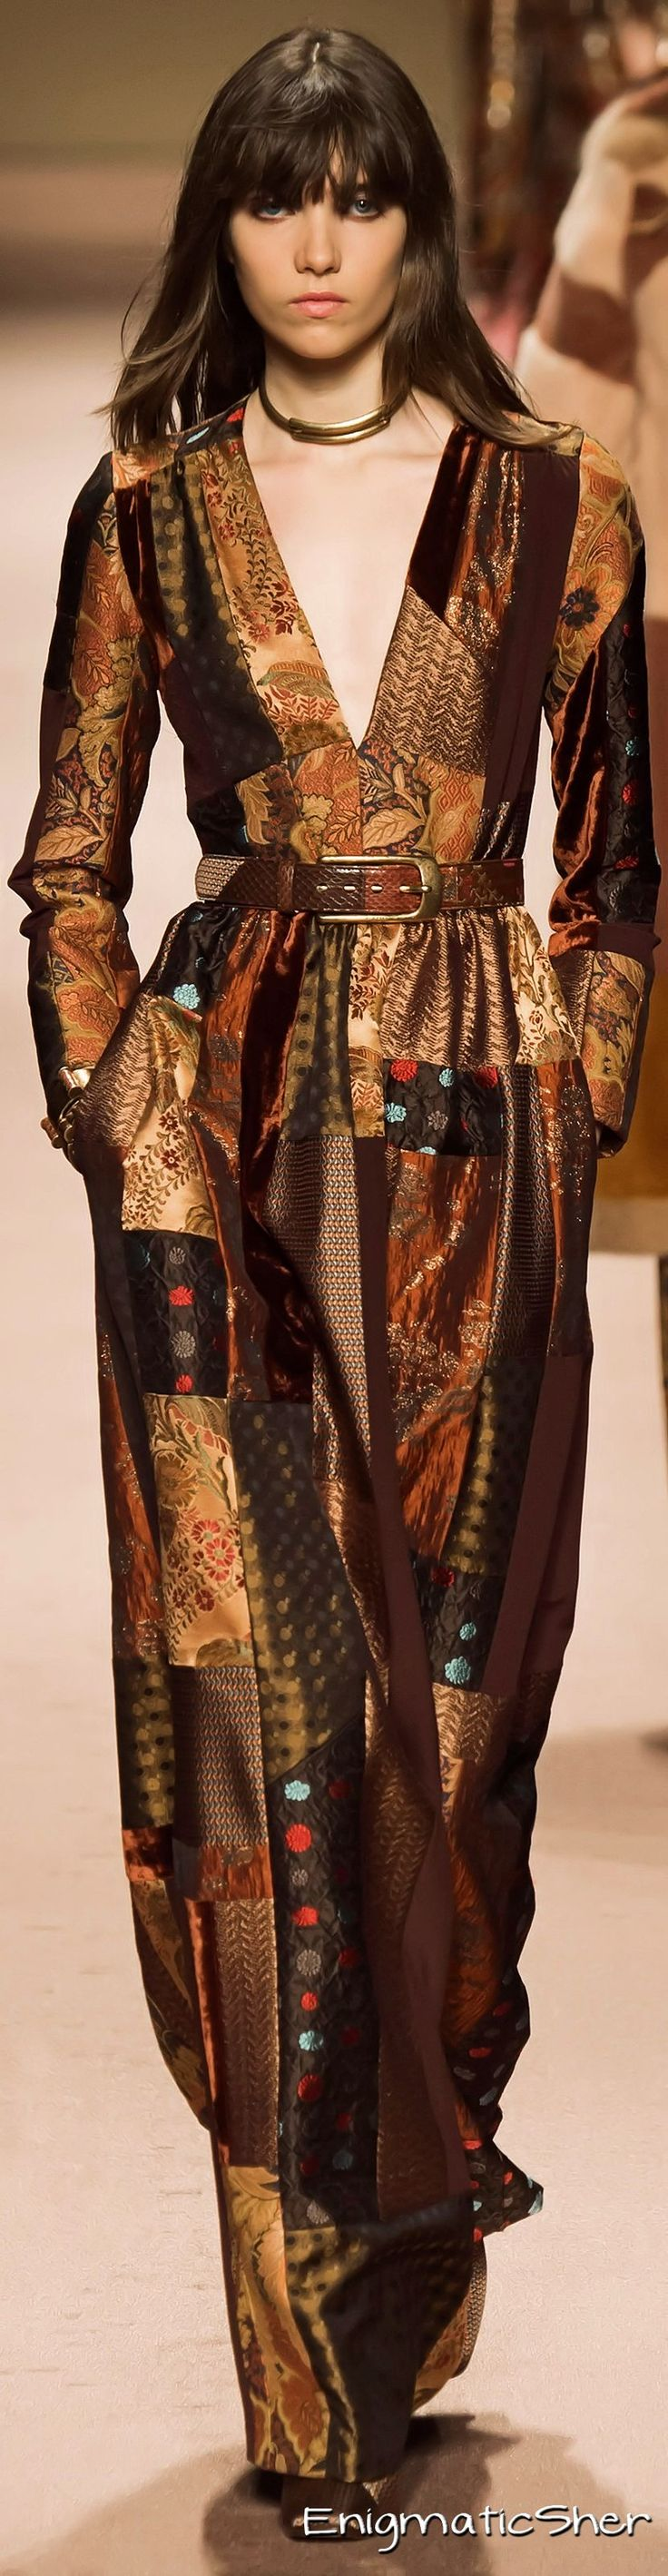 Etro Collections FW 2015-2016 | House of Beccaria~